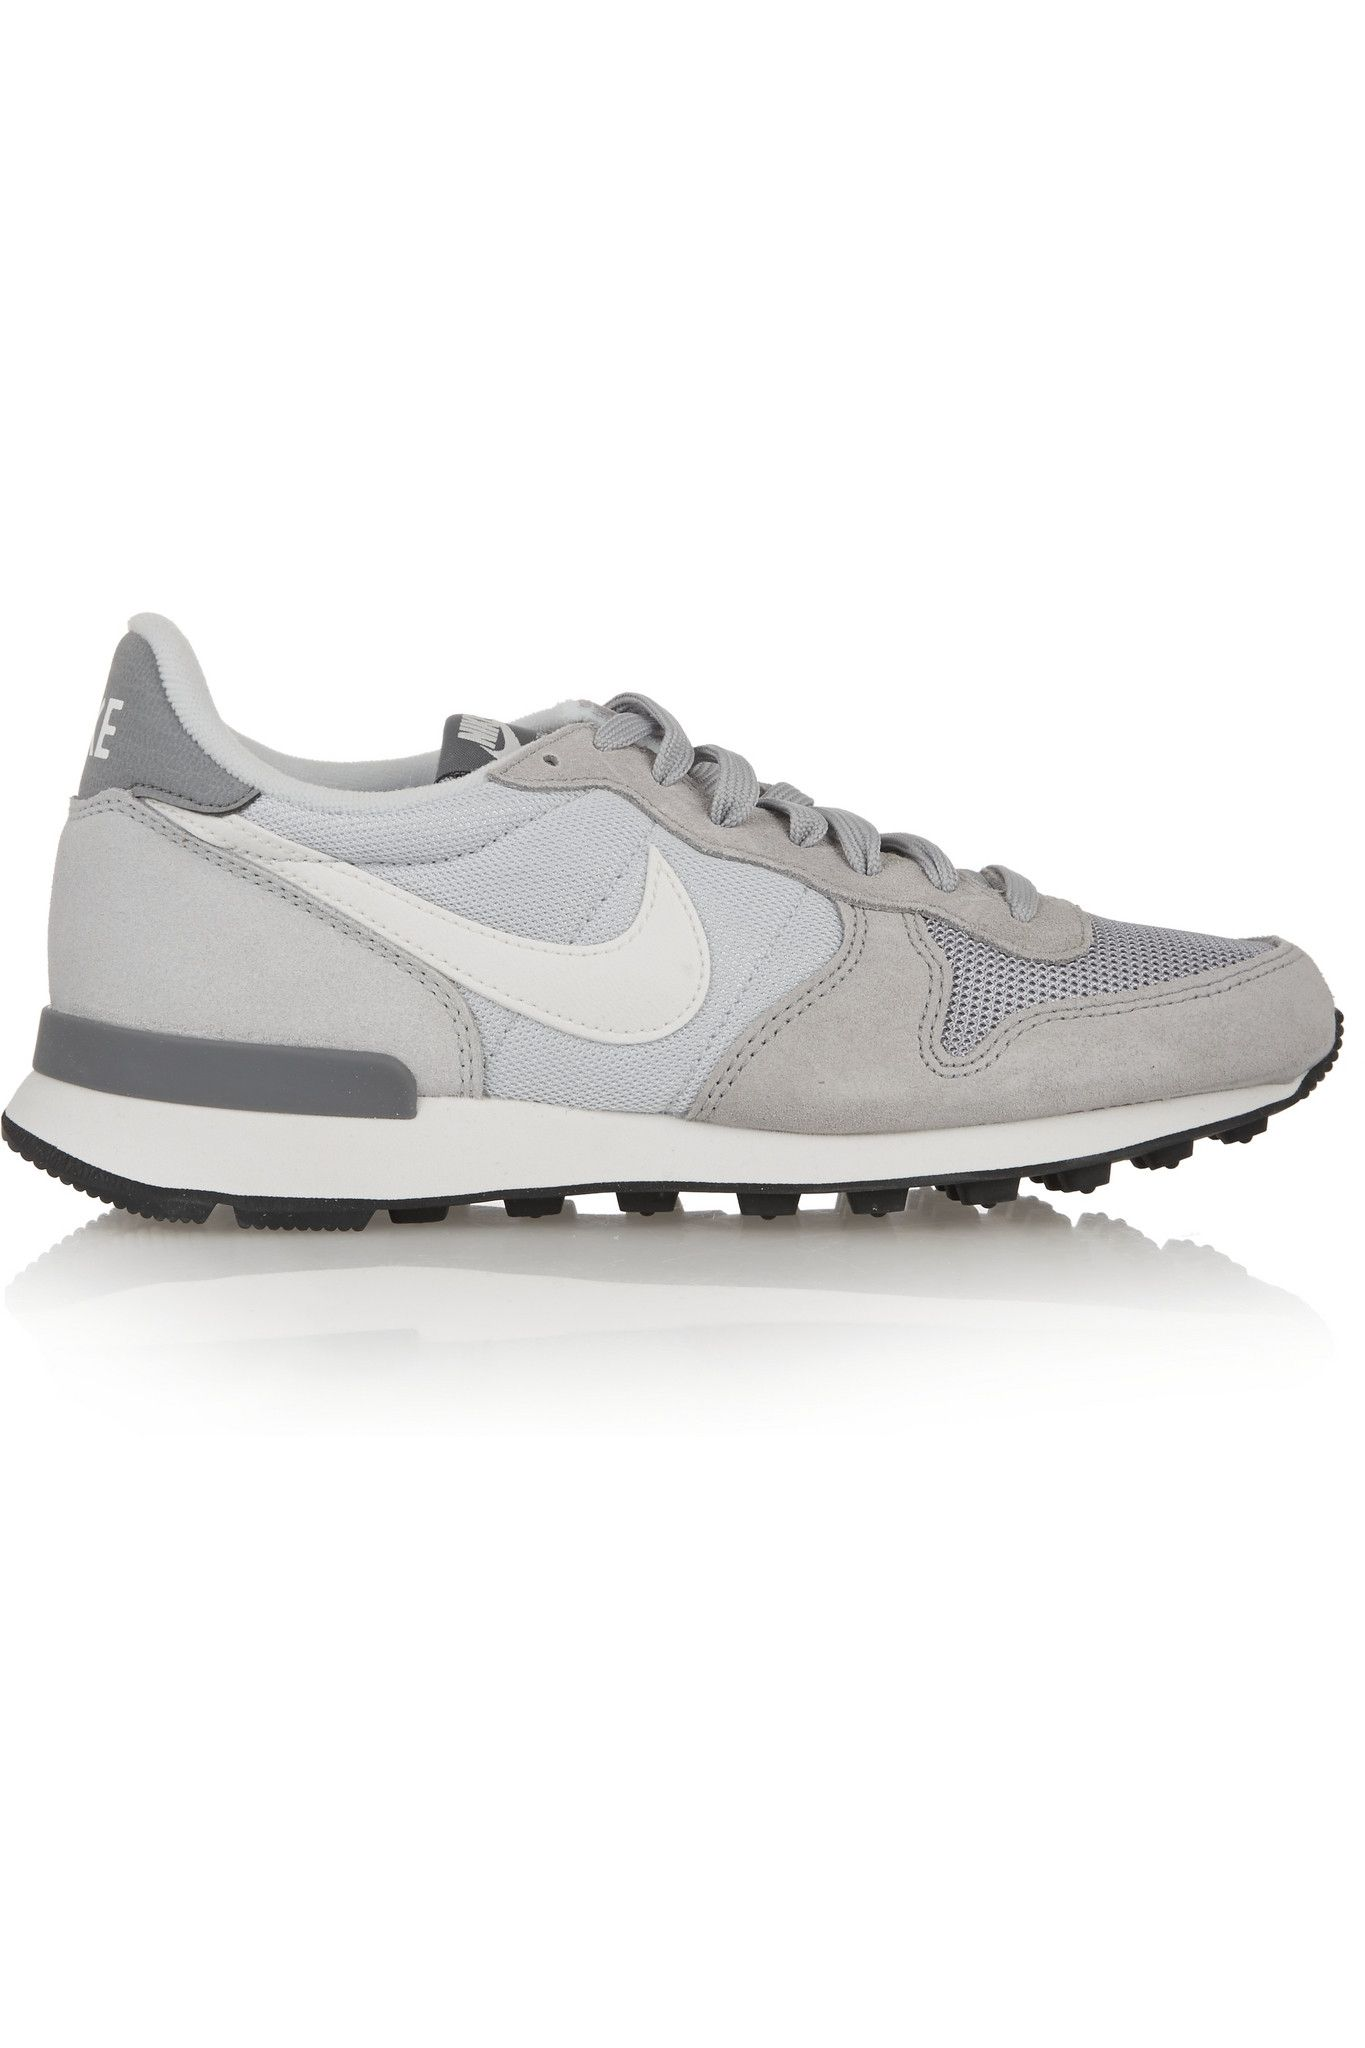 new styles b5d4f cc98b NIKE Internationalist suede, leather and mesh sneakers €90.00 https   www.